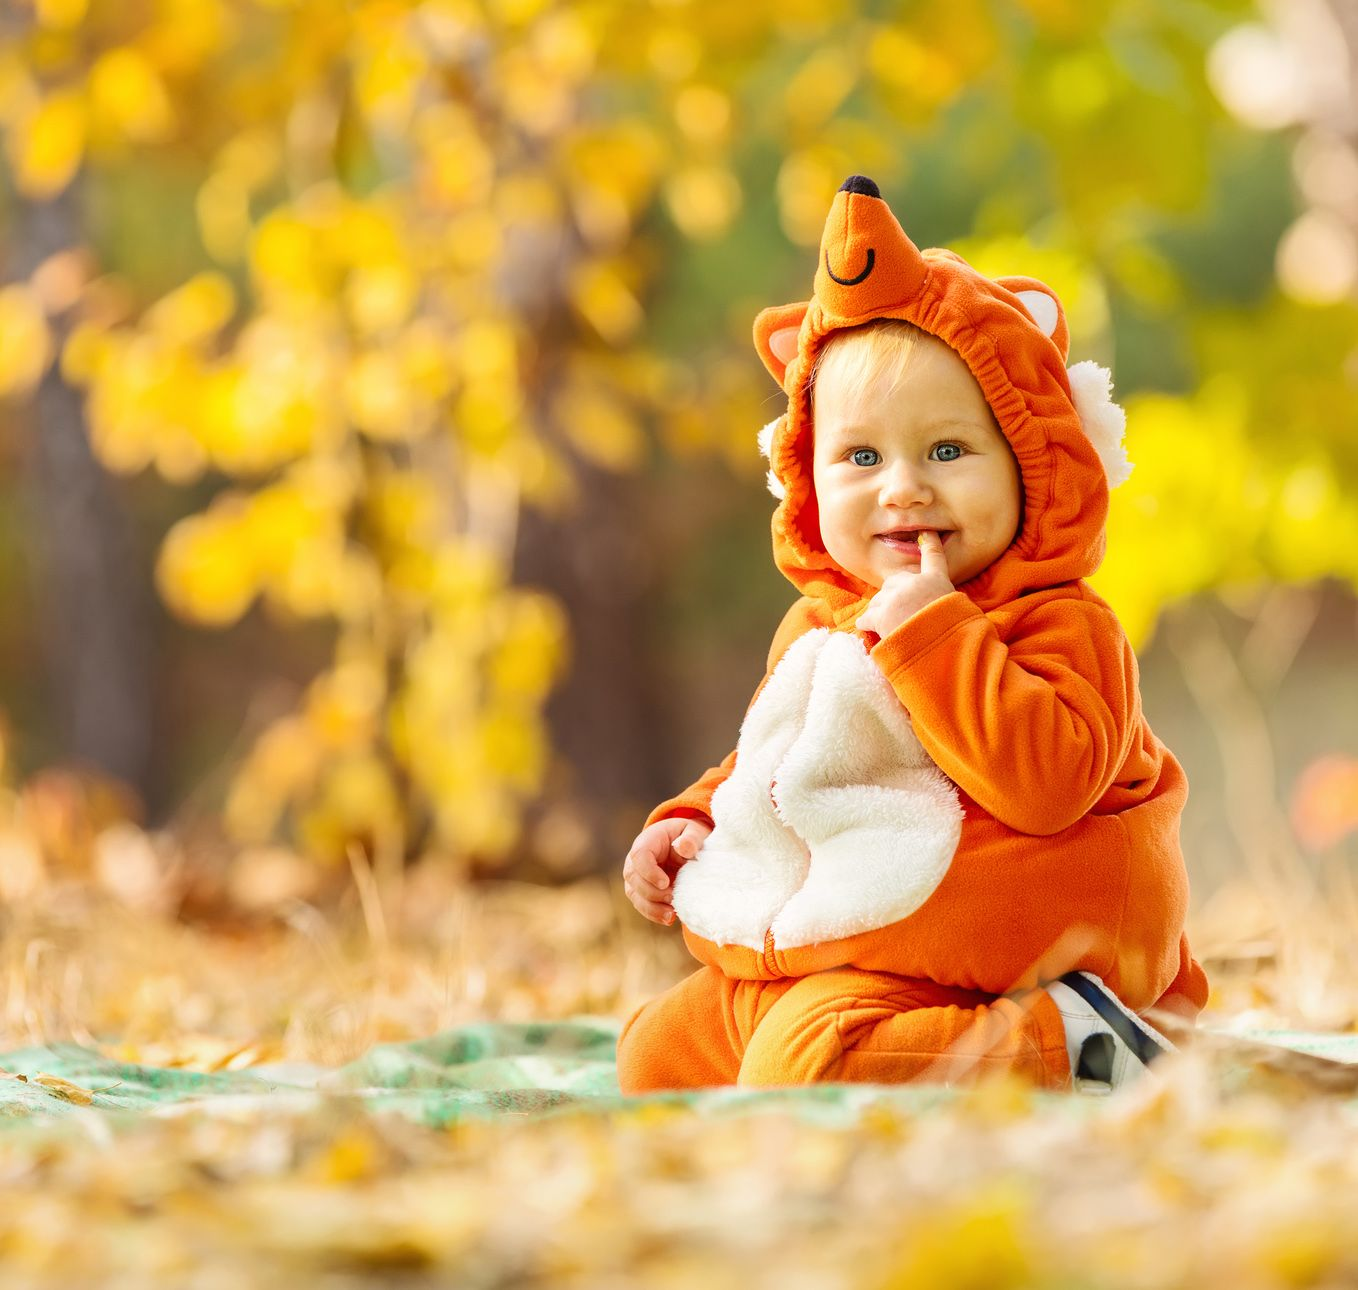 20 BabySized Halloween Costumes For Your Little One